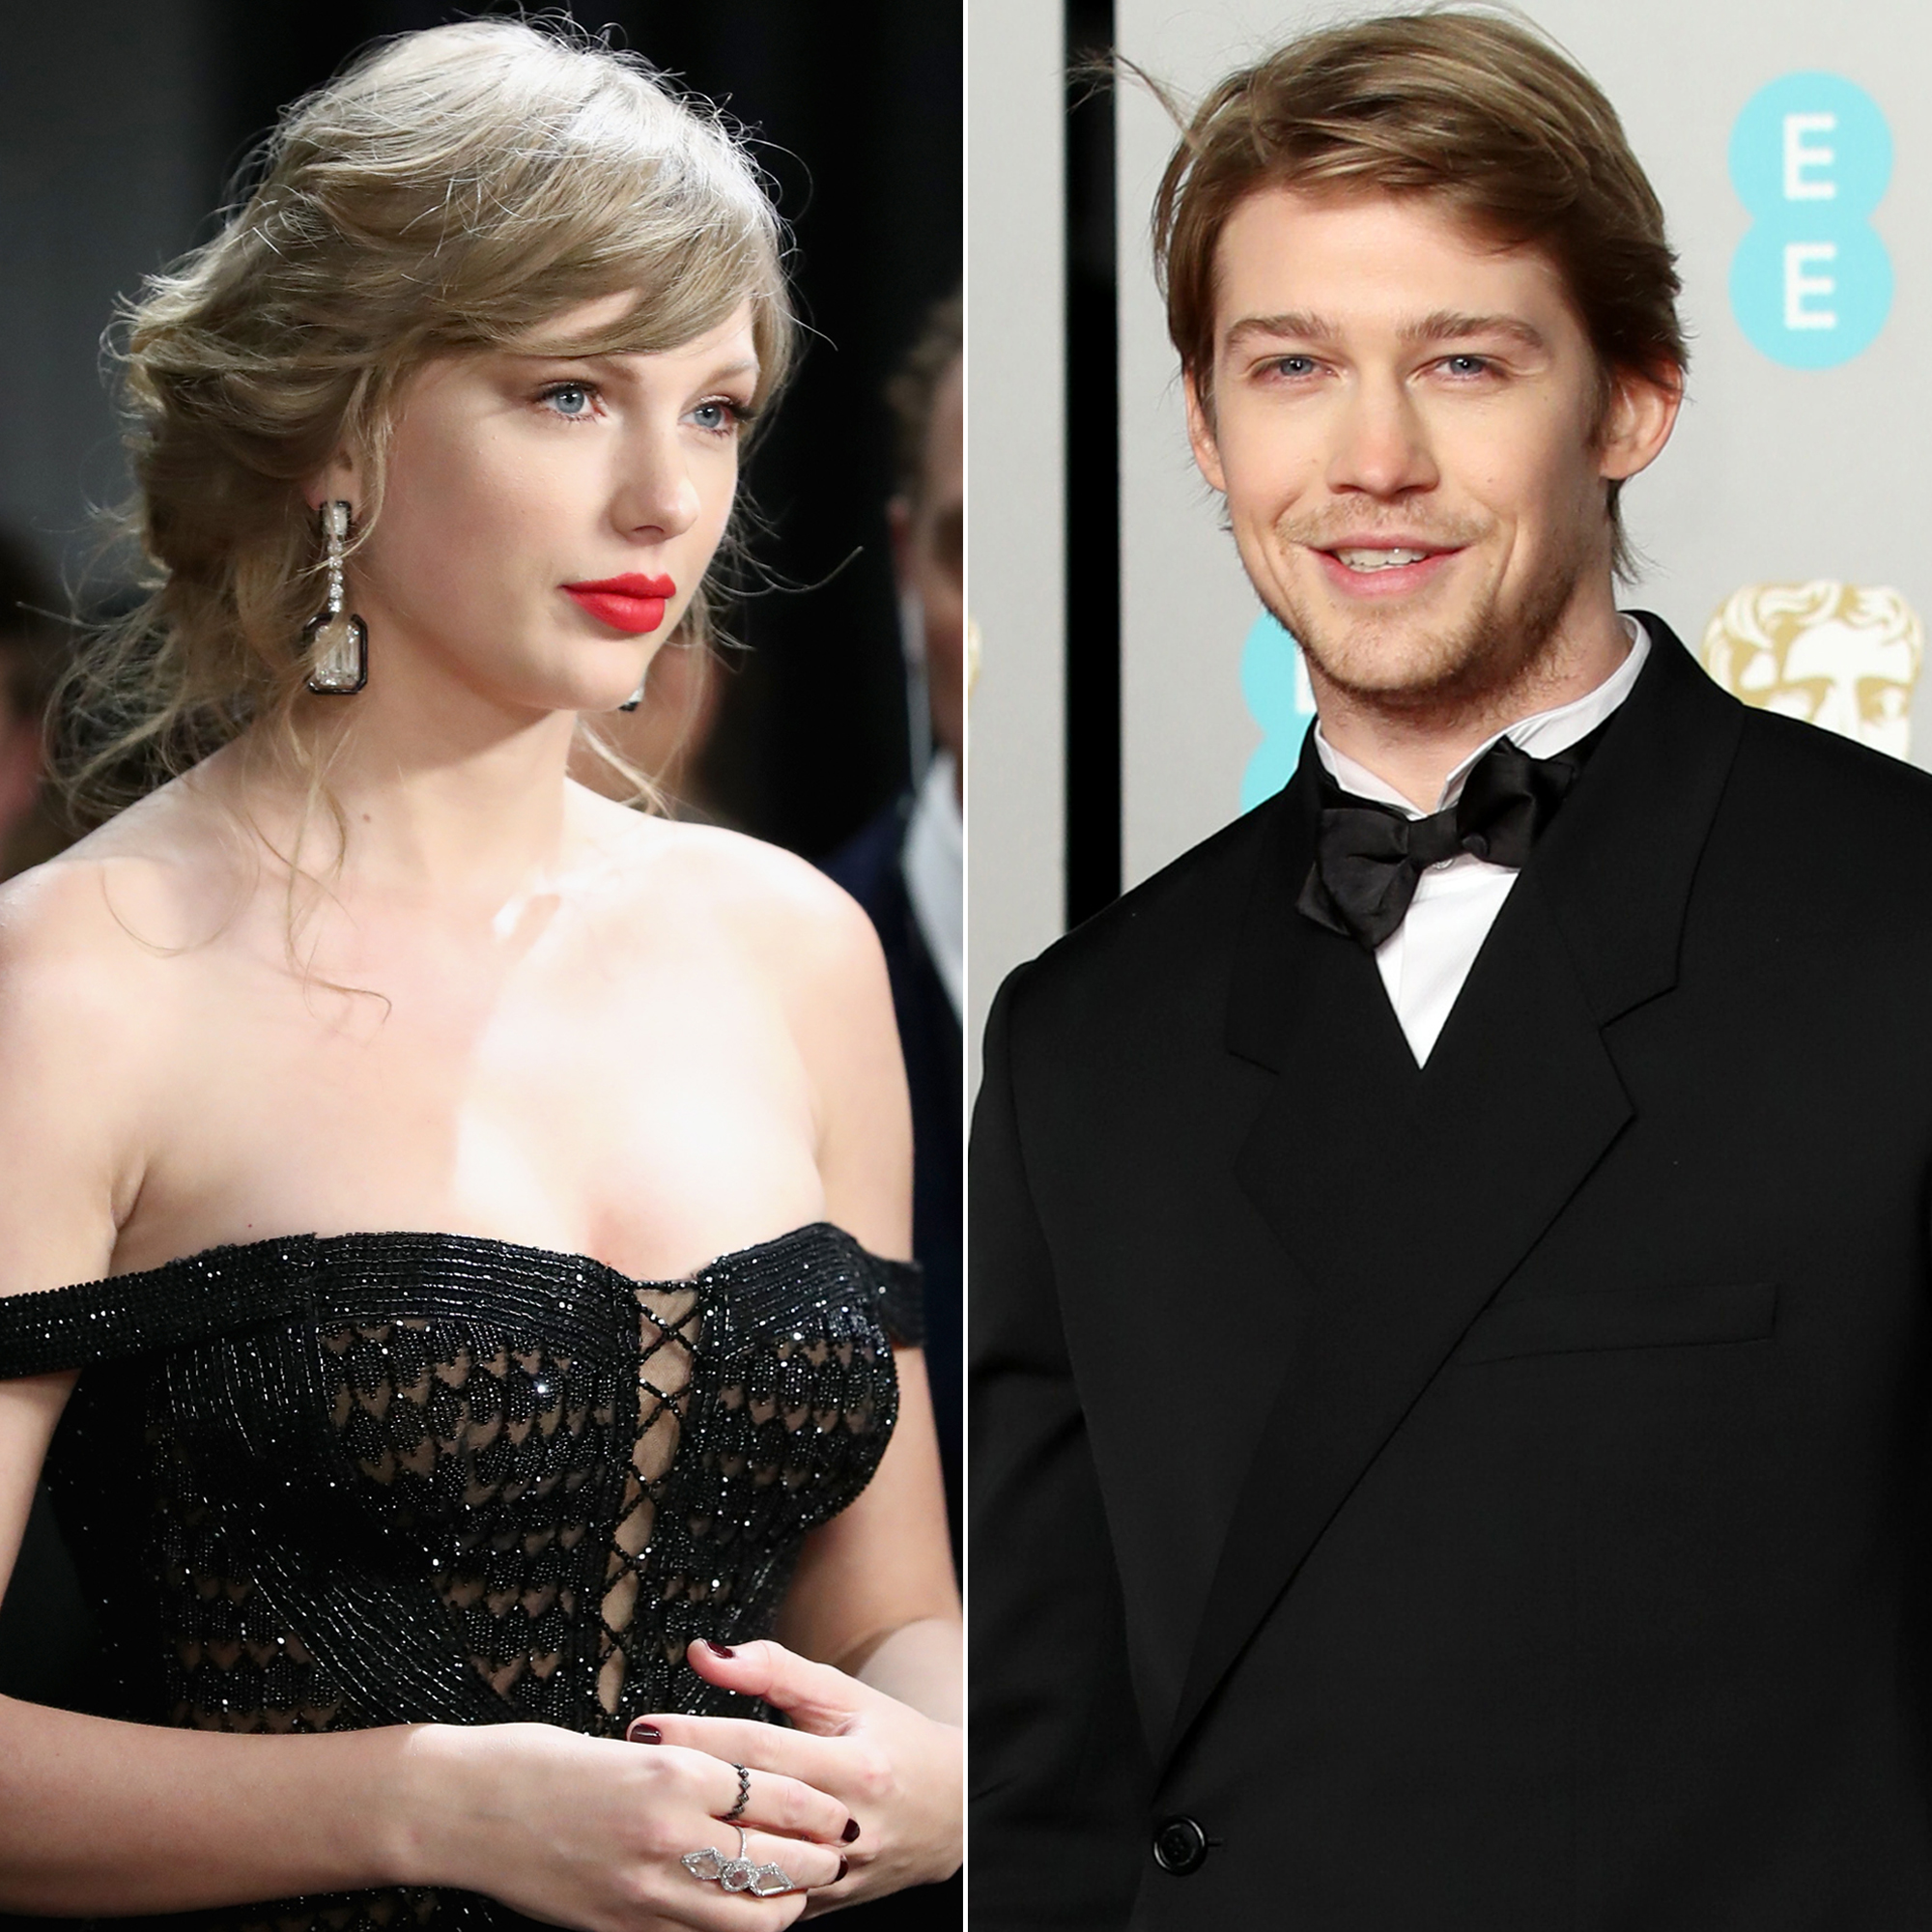 Taylor Swift Is a Proud Girlfriend at the 2019 BAFTA Awards as She Congratulates BF Joe Alwyn - Taylor Swift and Joe Alwyn.